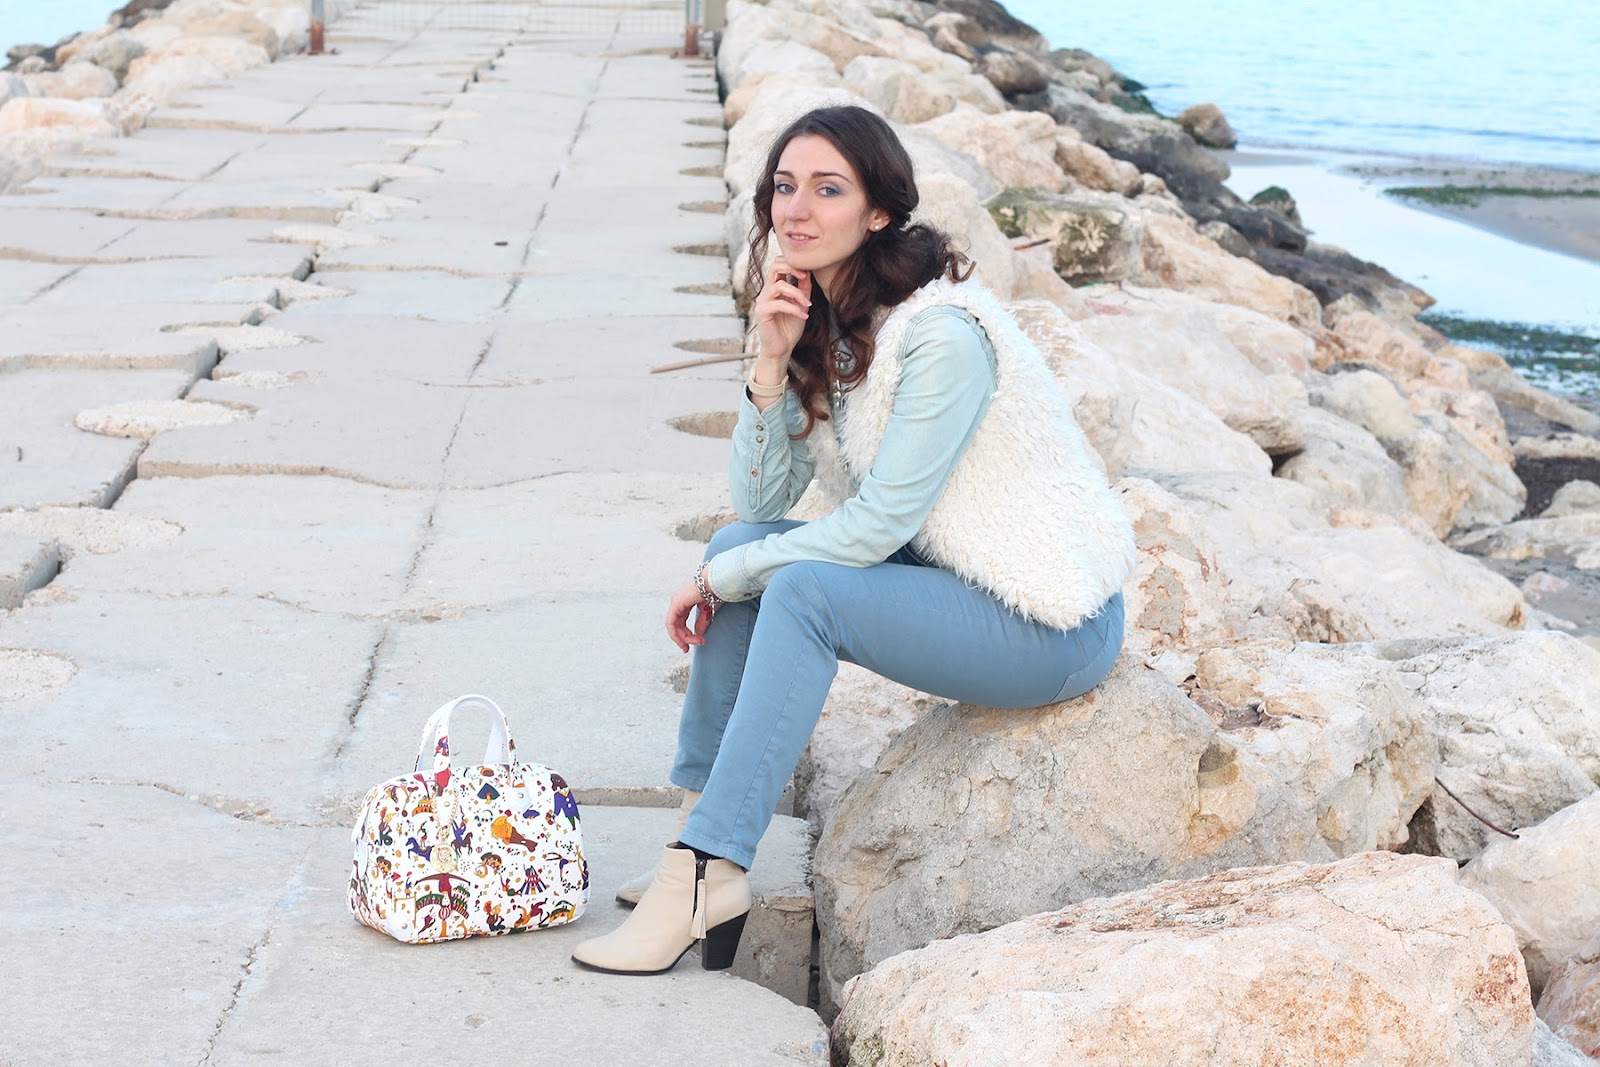 fashion blogger moda pescara italy trend glamour vogue piero guidi bag borsa bauletto white circus denim shirt zara pants hm pimkie boots fur gilet curly hair larimar necklace collana ops swatch